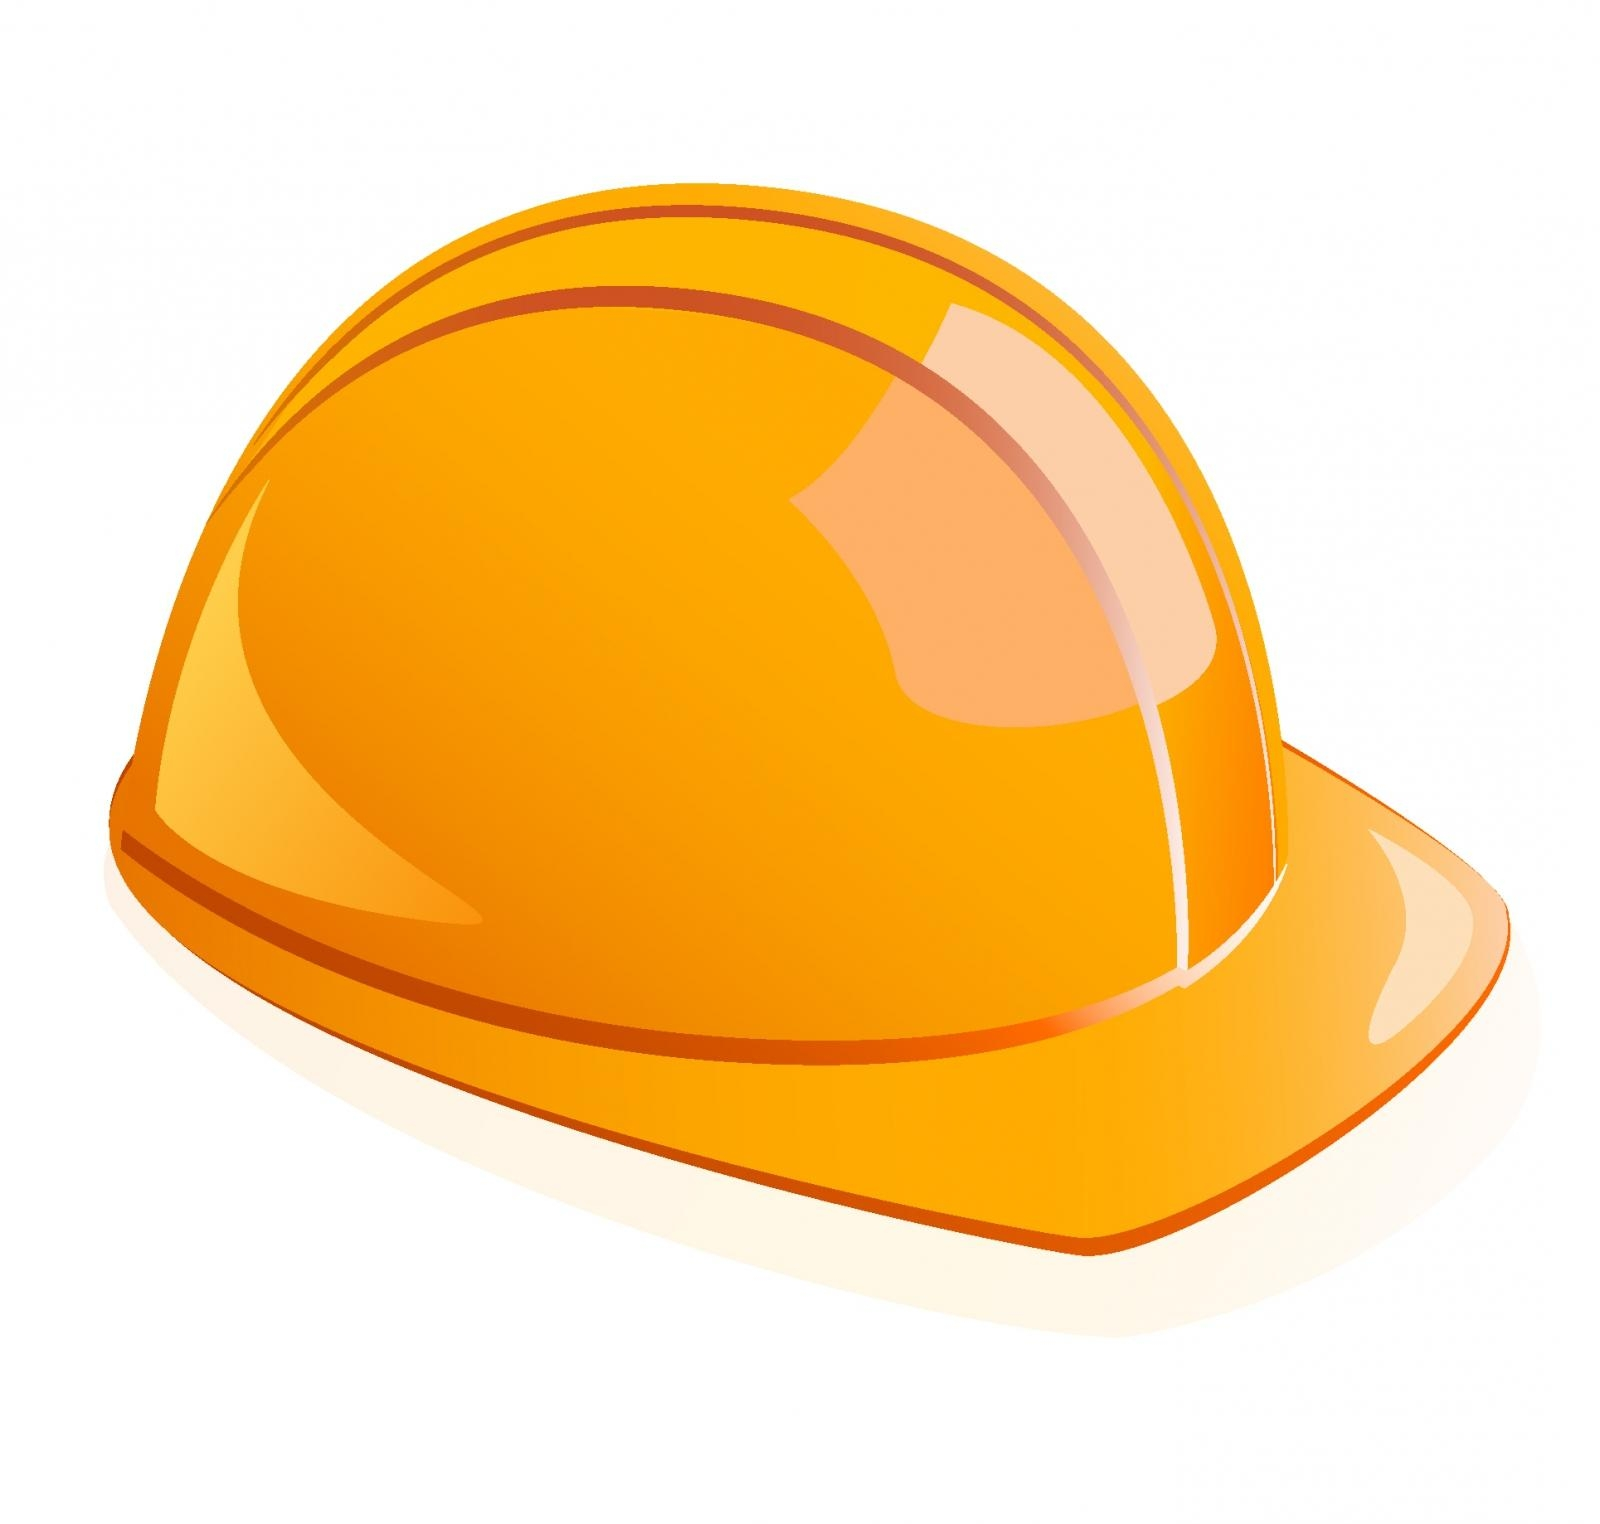 1600x1524 Best Of Hard Hat Clipart Gallery